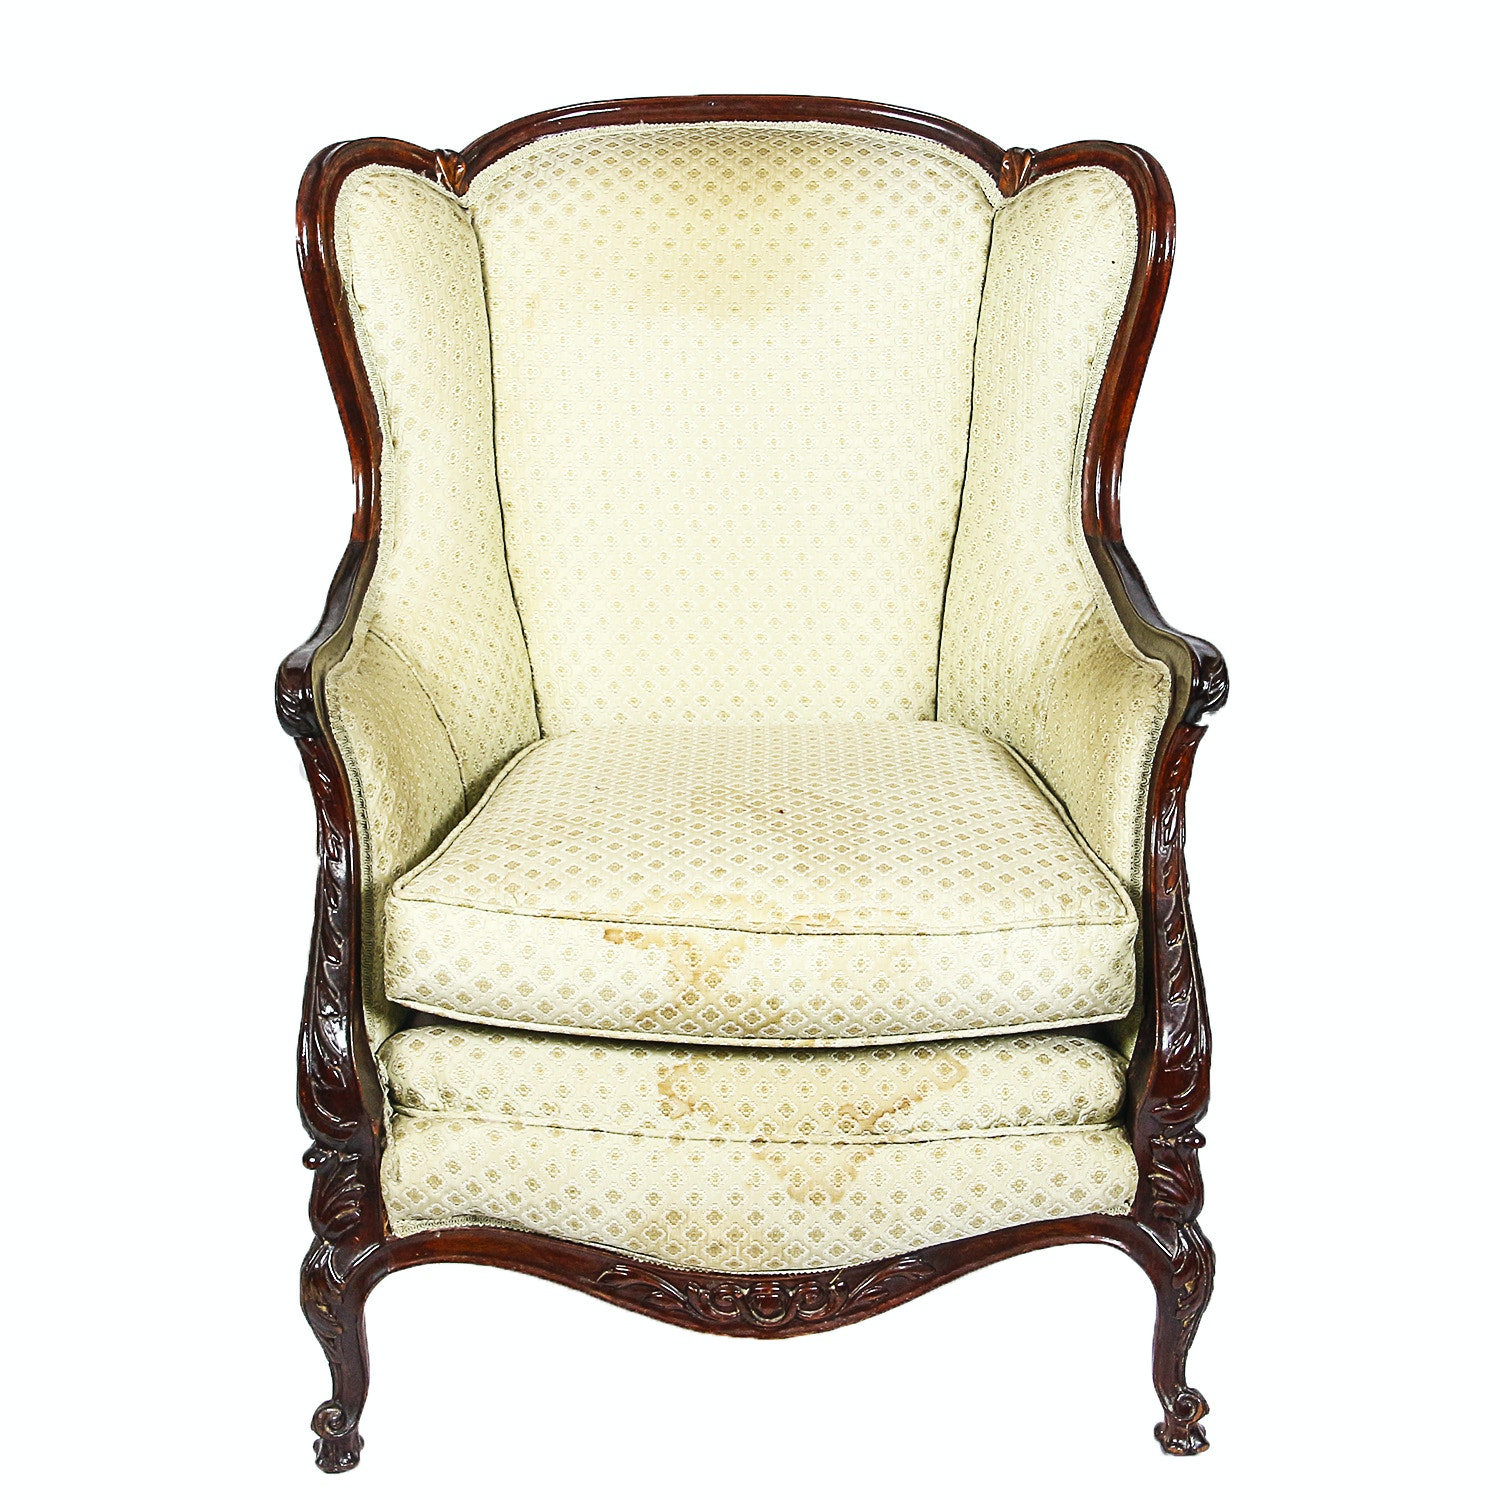 Vintage French Provincial Style Upholstered Wingback Chair